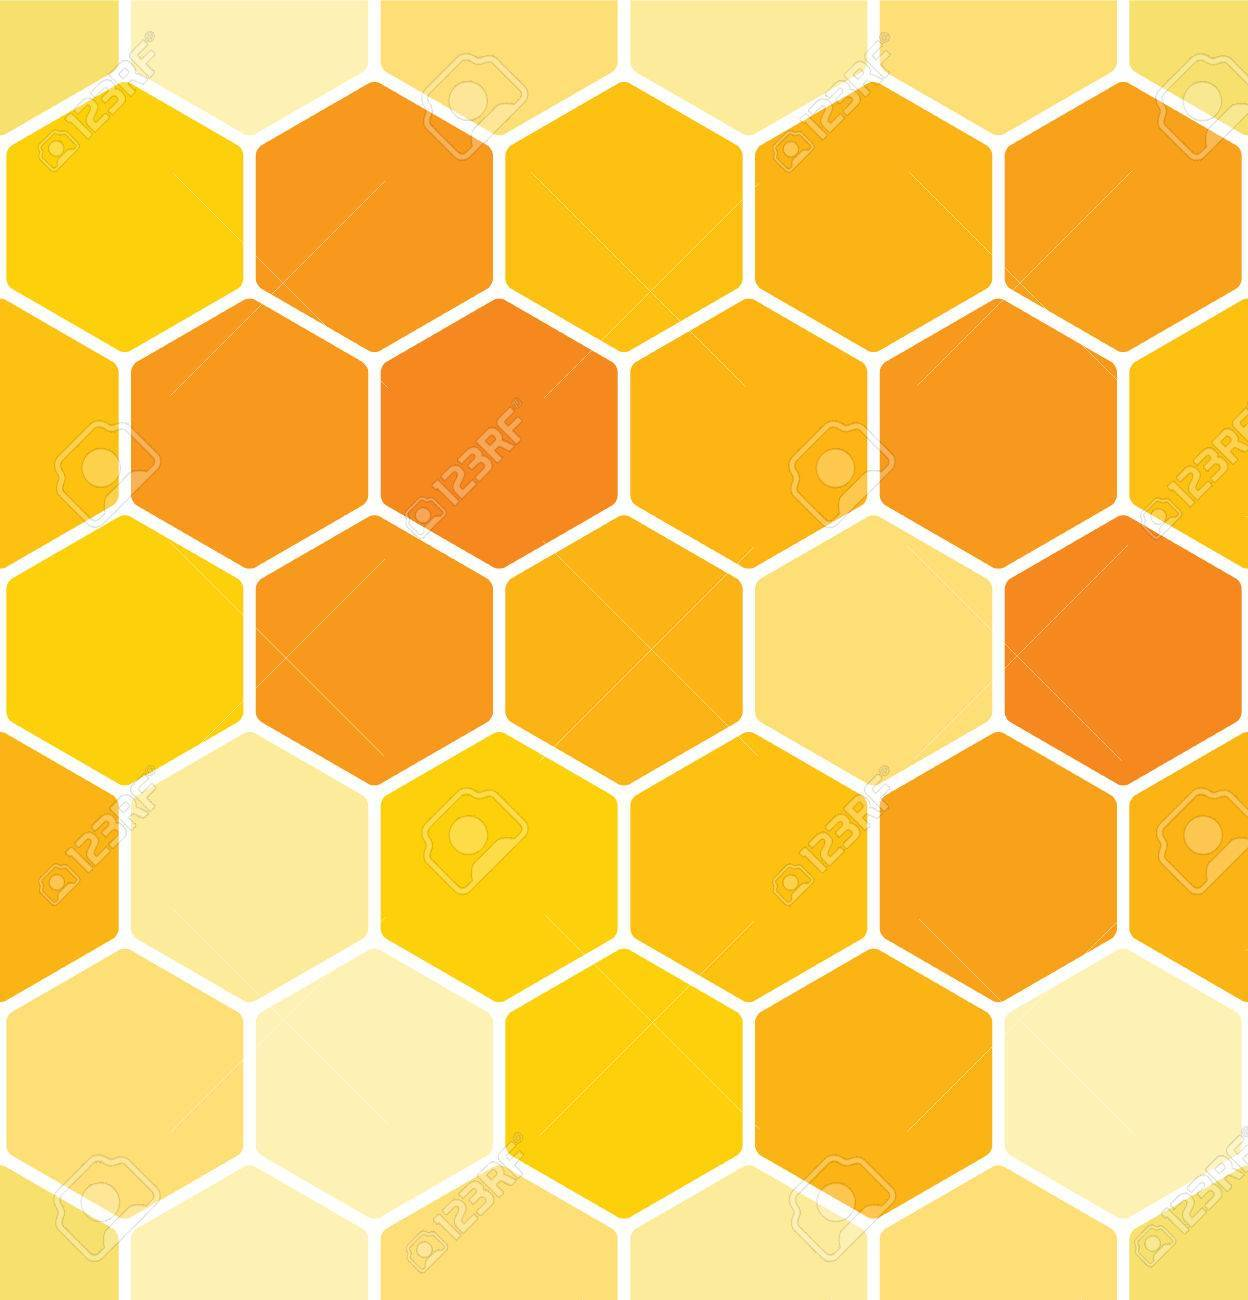 1 honeycomb clipart image freeuse download Honeycomb design clipart 1 » Clipart Portal image freeuse download